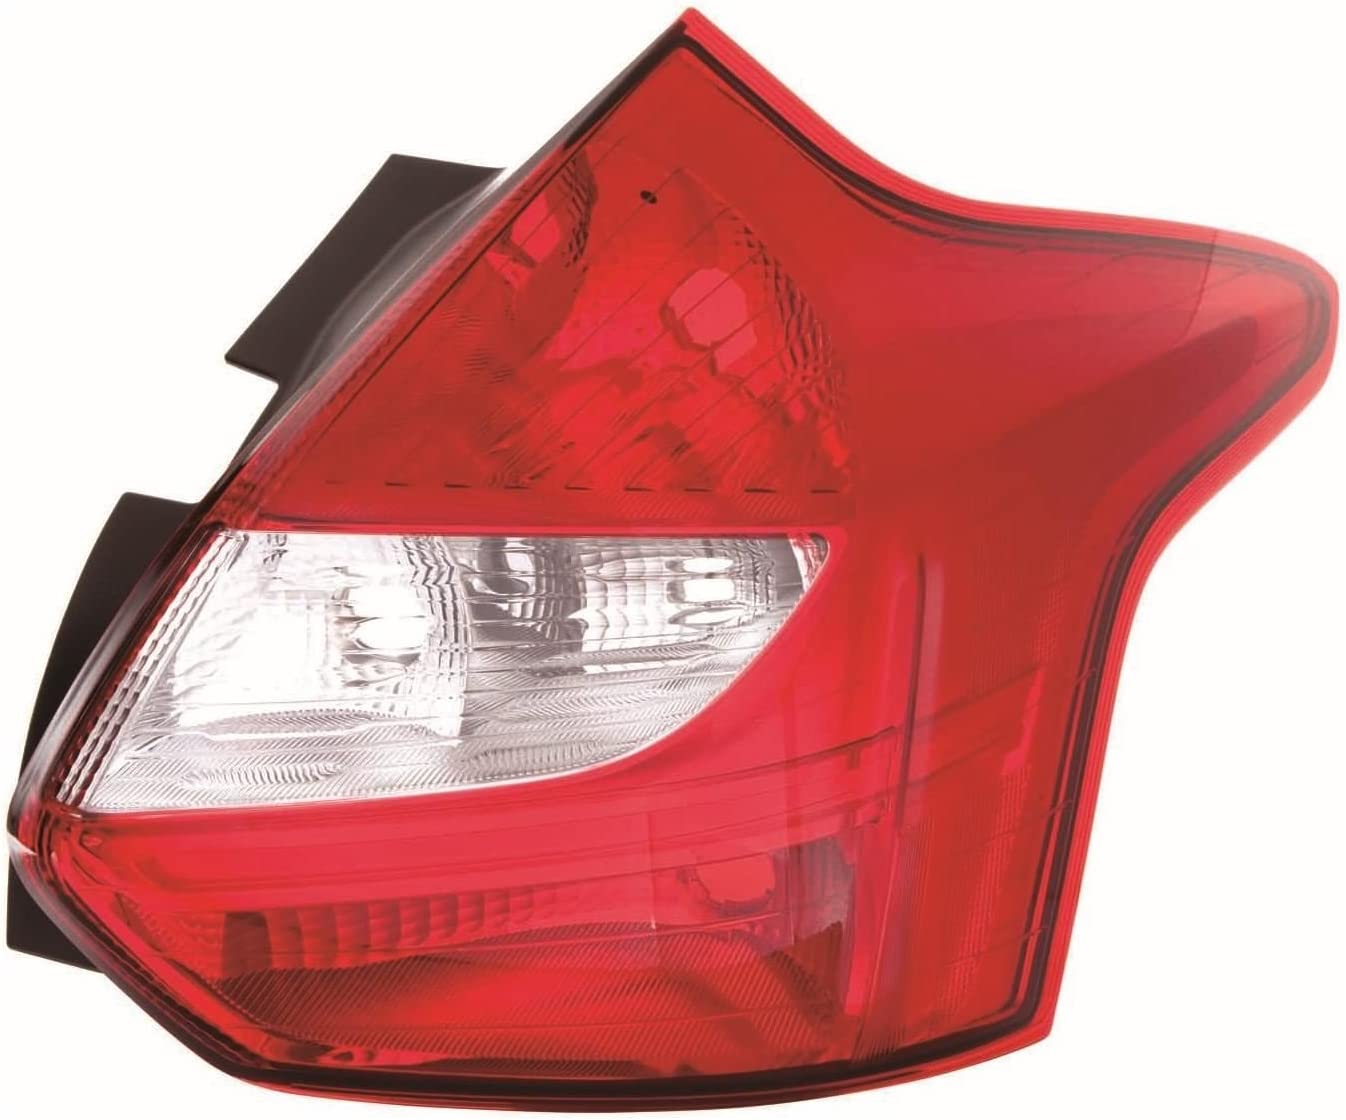 Focus Mk3 2011-2015 Hatchback Rear Tail Light Lamp O//S Drivers Right